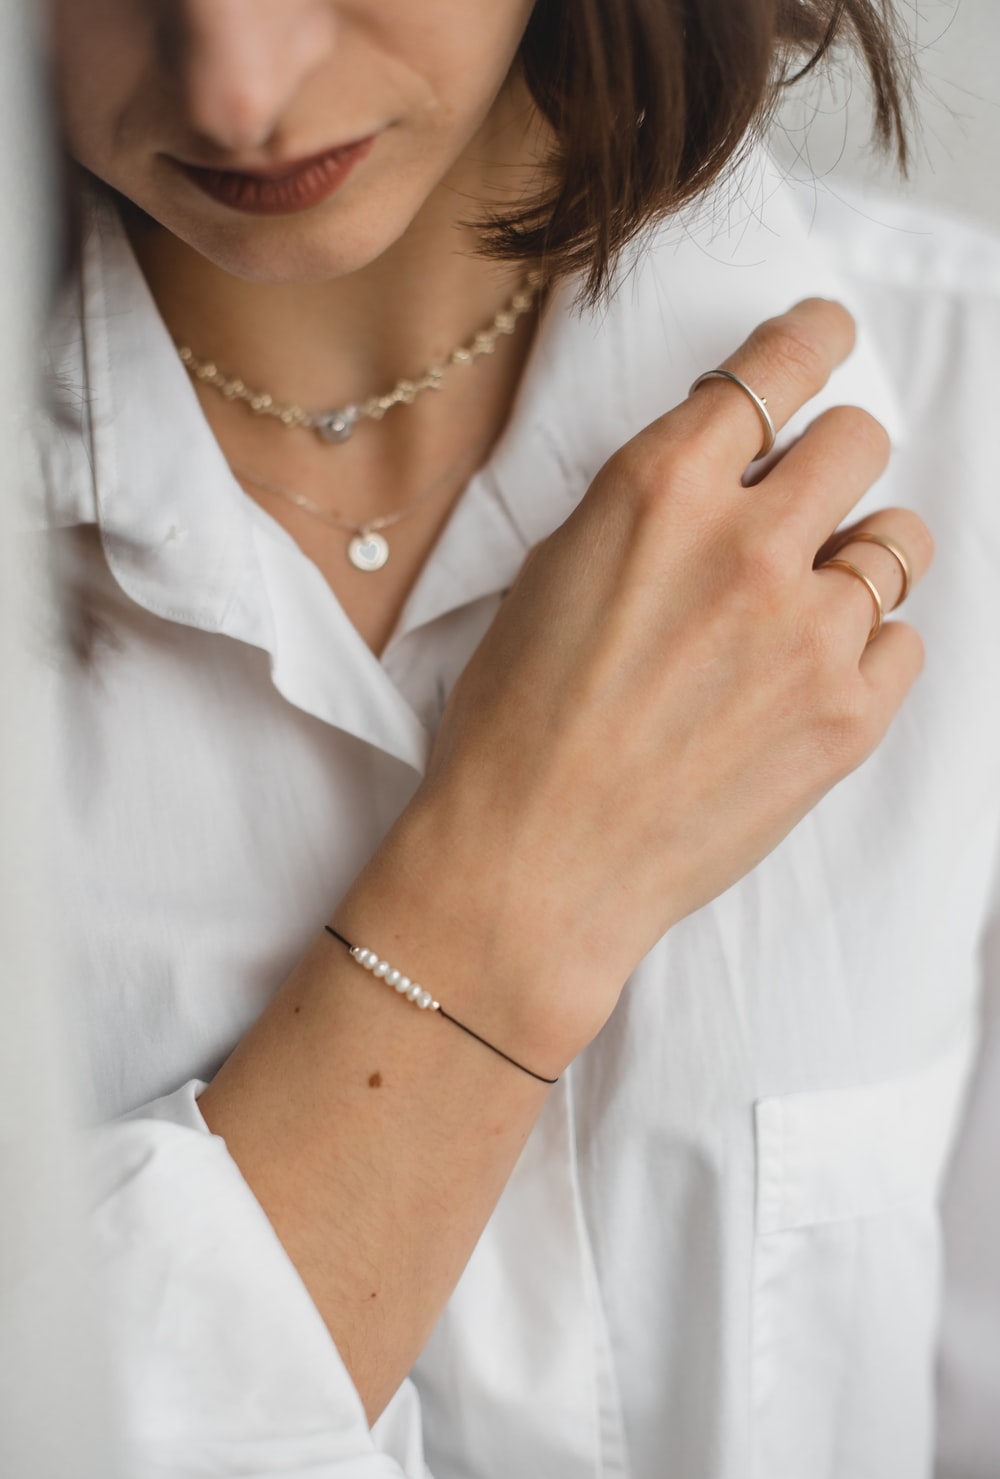 woman in white button up shirt wearing gold bracelet